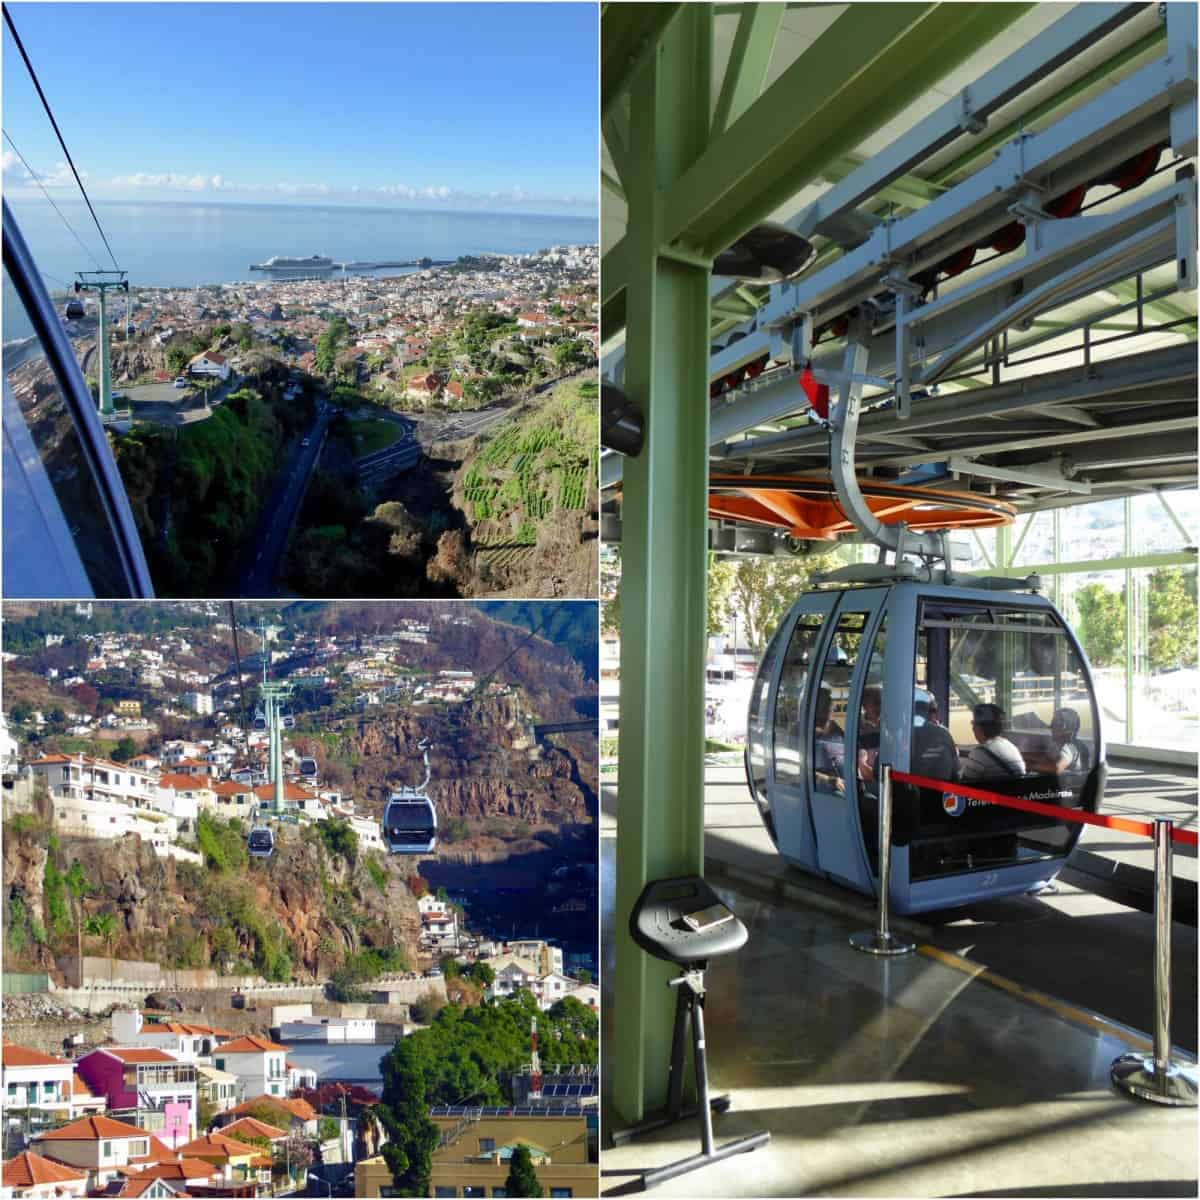 Best shore excursions in Madeira for families - Cruising with Kids